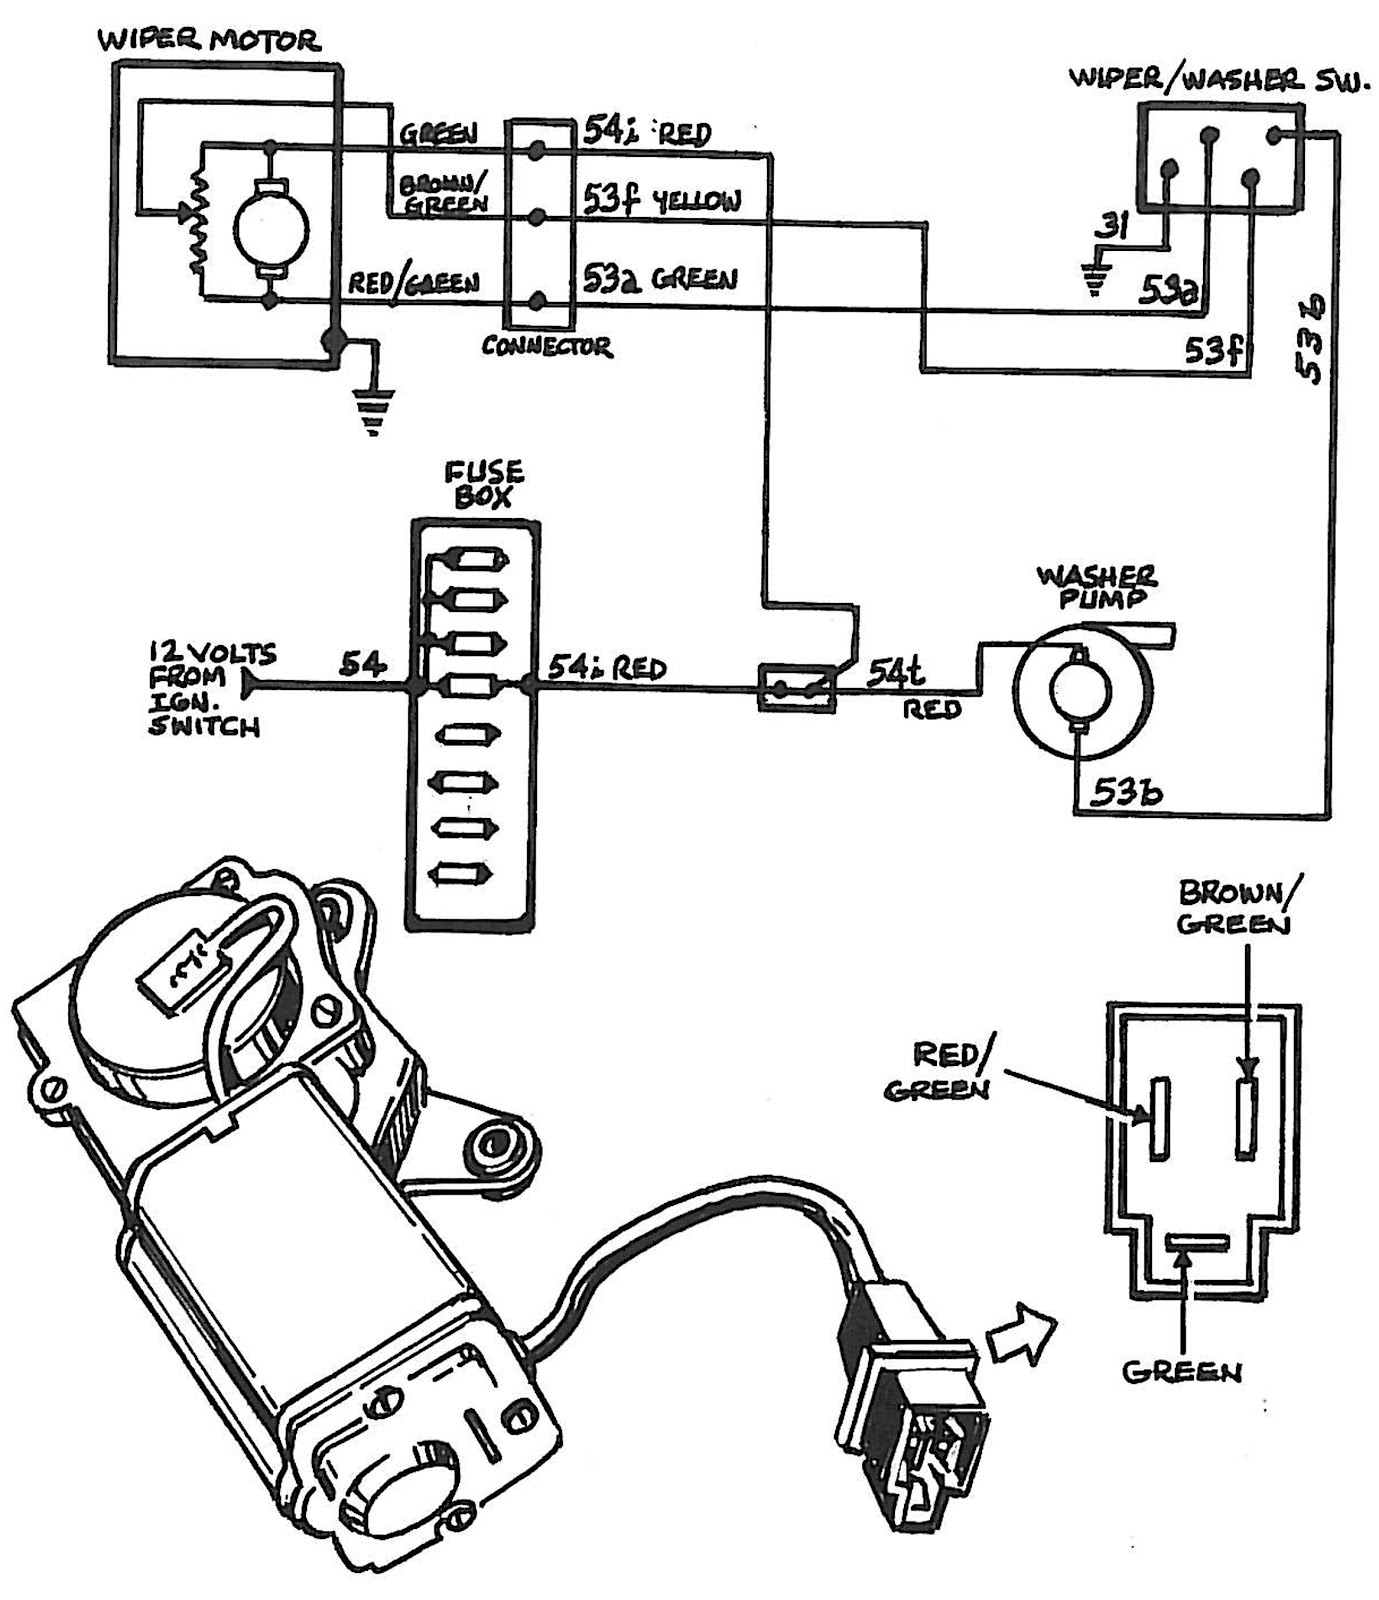 Chevrolet Wiper Wiring Diagram on 1963 chevy suburban